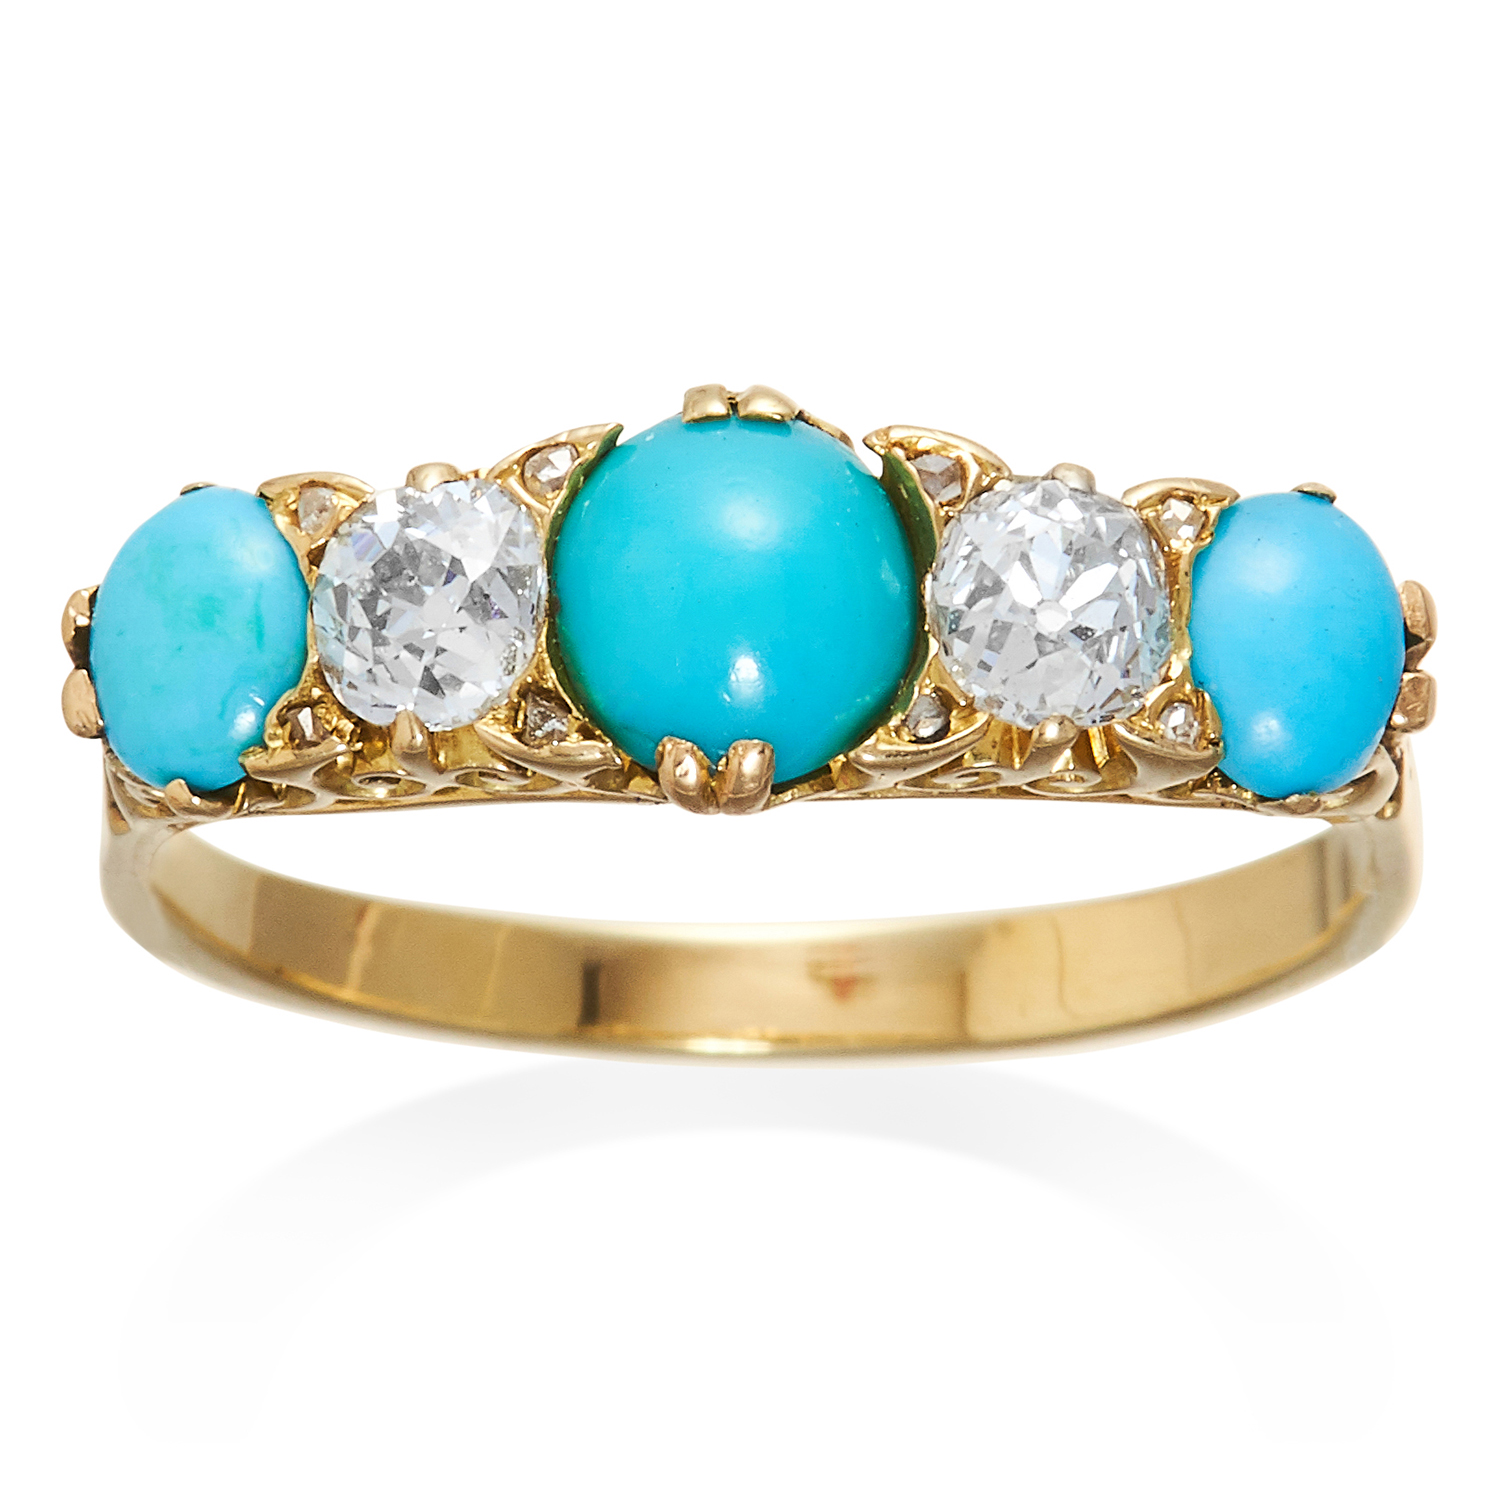 Los 56 - AN ANTIQUE FIVE STONE TURQUOISE AND DIAMOND RING in high carat yellow gold, set with three